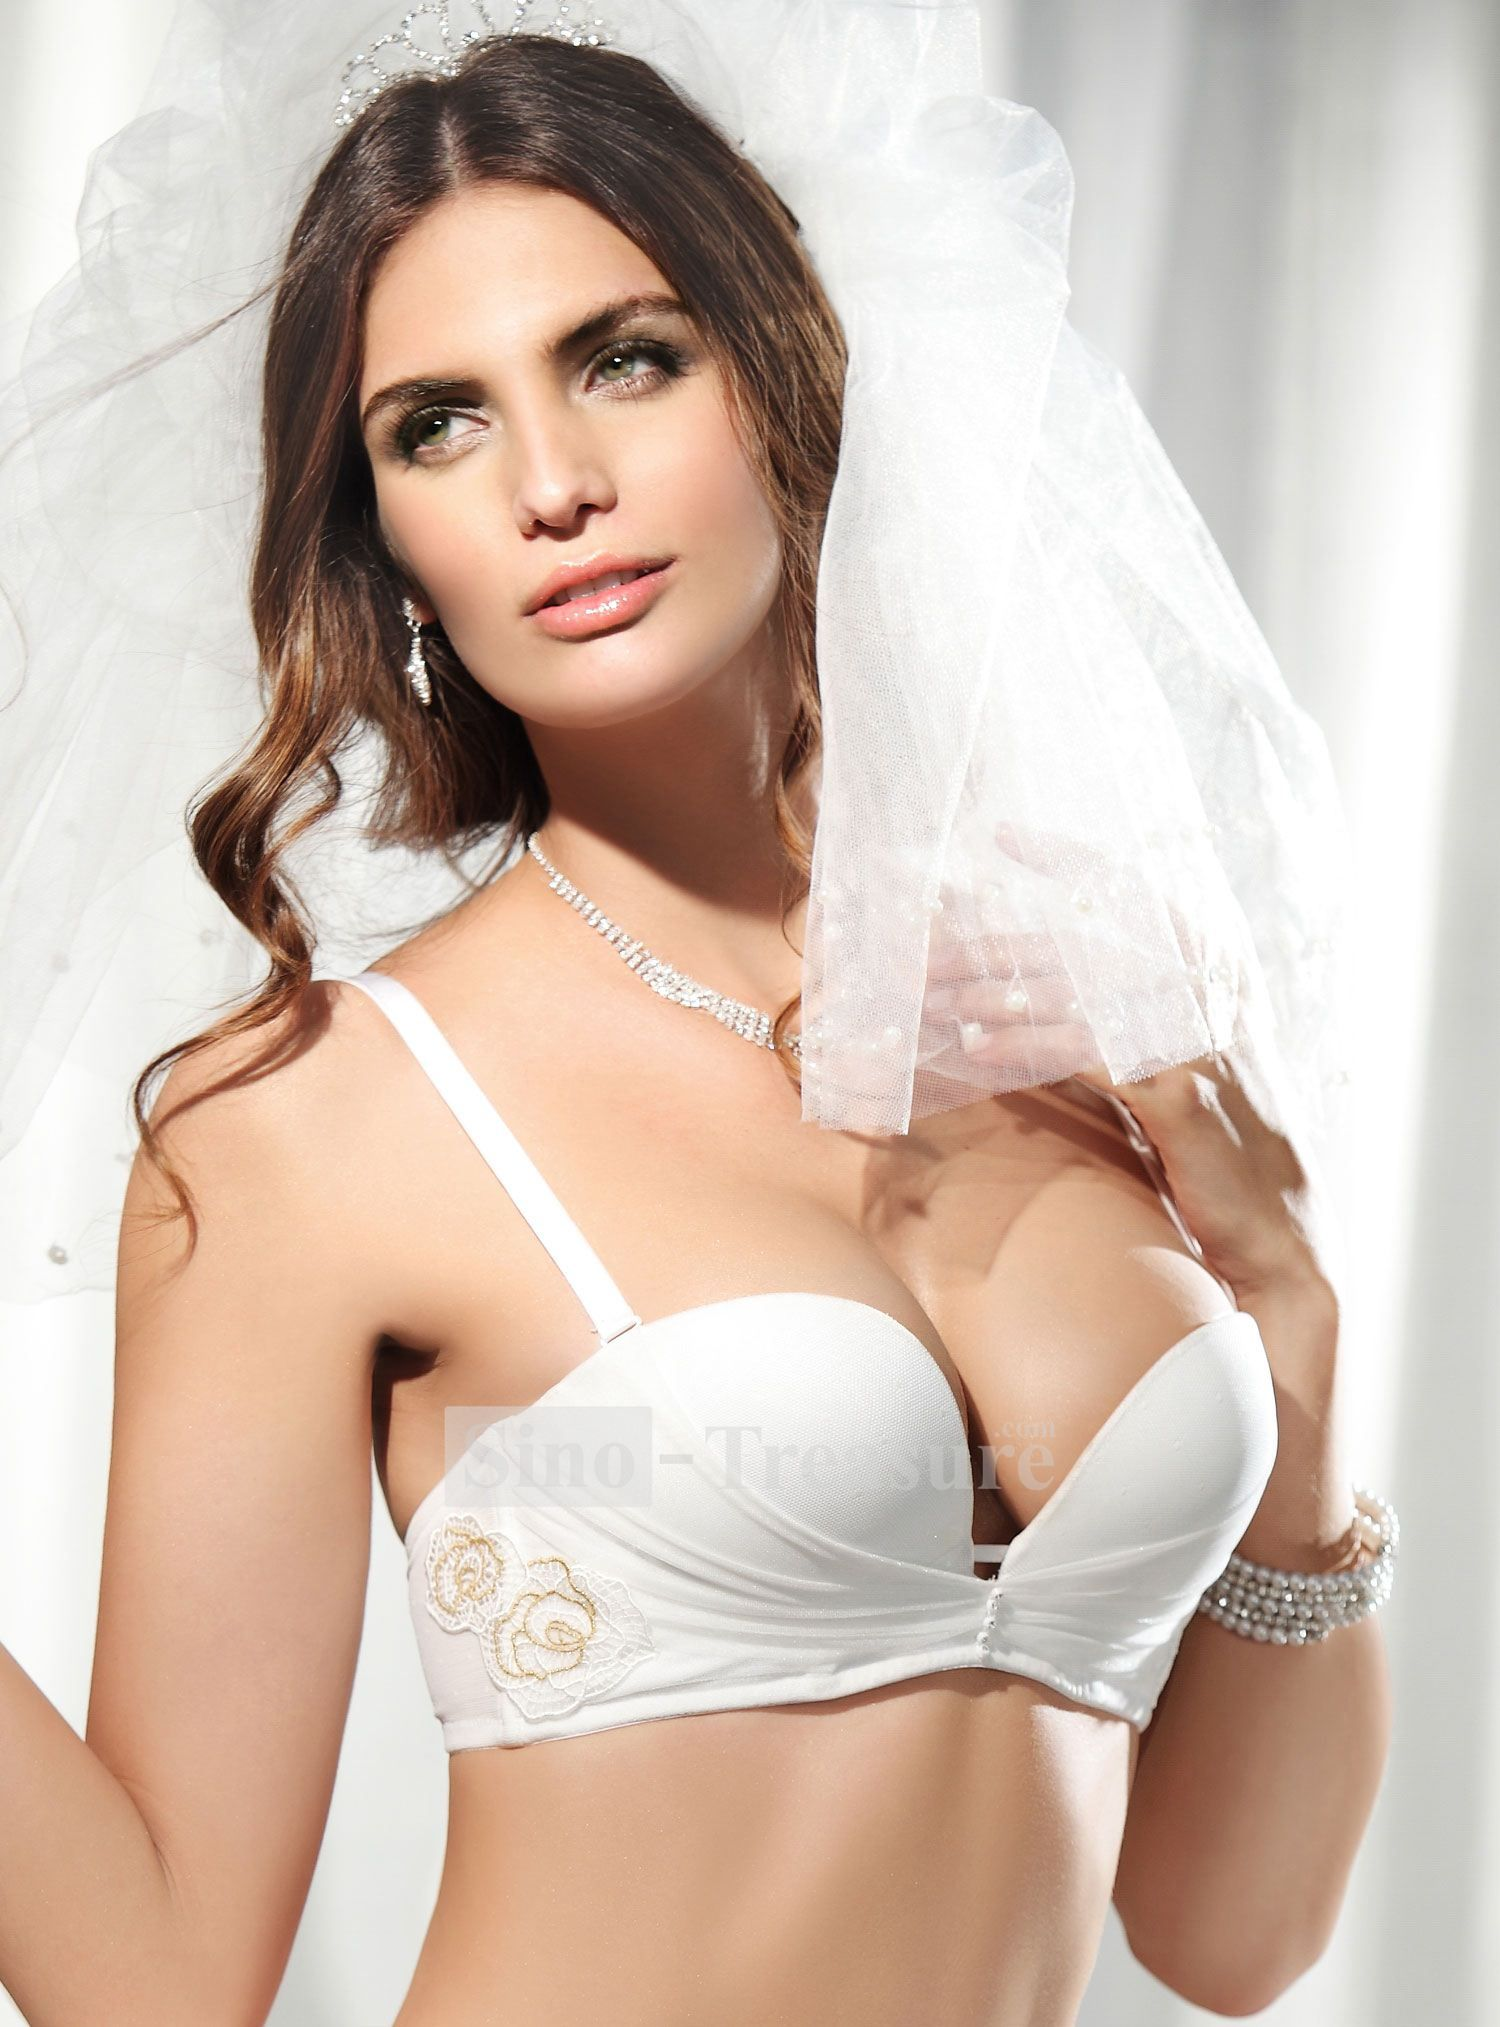 fbd104c490bb5 Elegant Basic A Demi-cup Thick Cup Evening Series Women s Bras  49.99